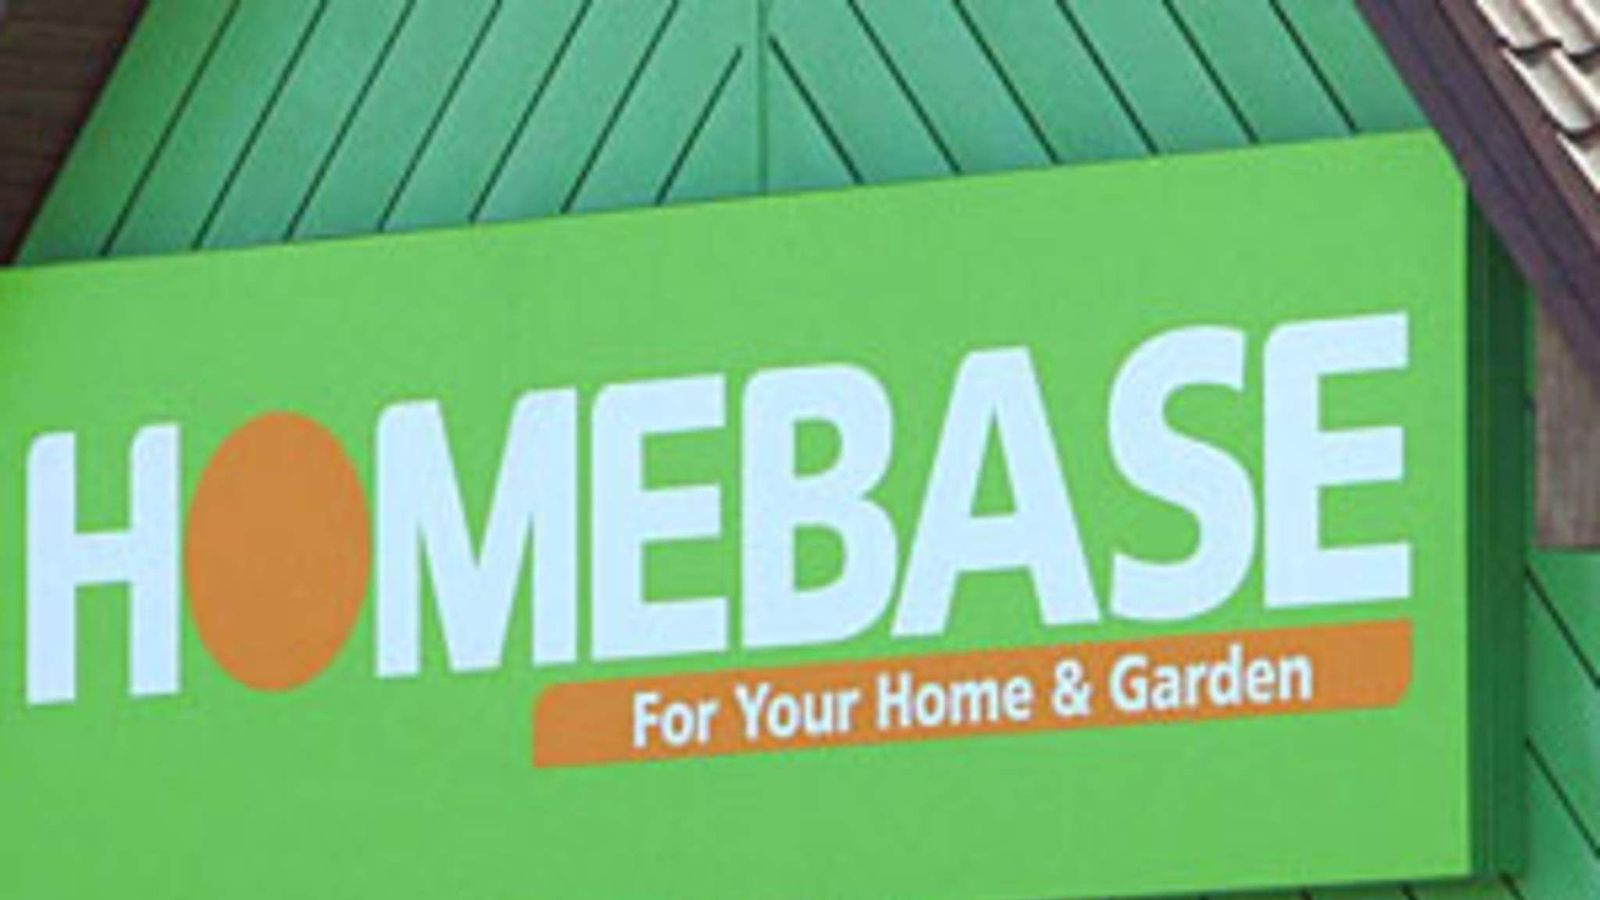 Homebase To Close 42 Stores, Putting 1,500 Jobs At Risk